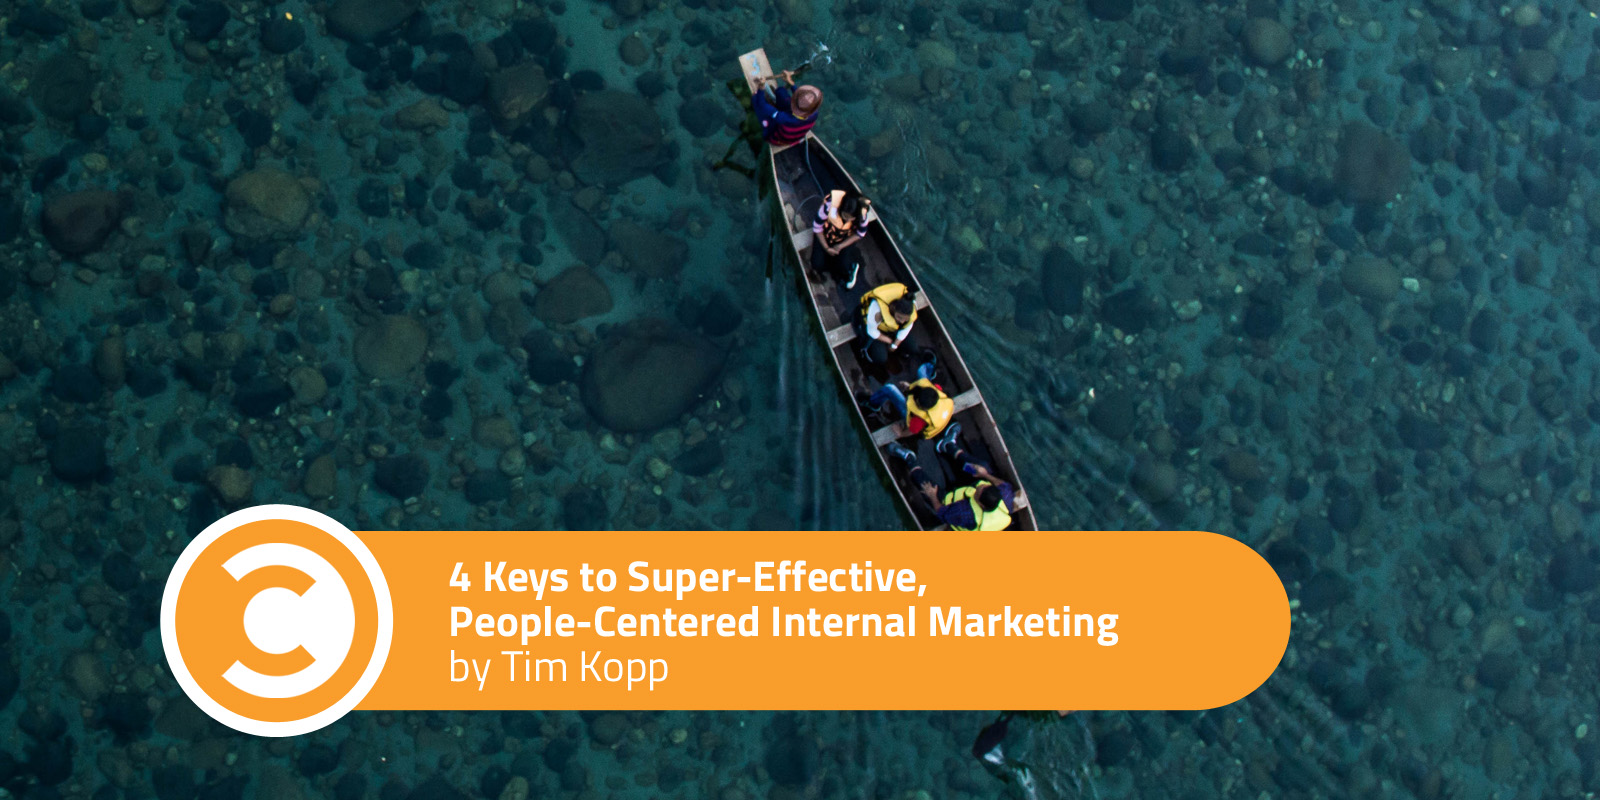 4 Keys to Super-Effective, People-Centered Internal Marketing